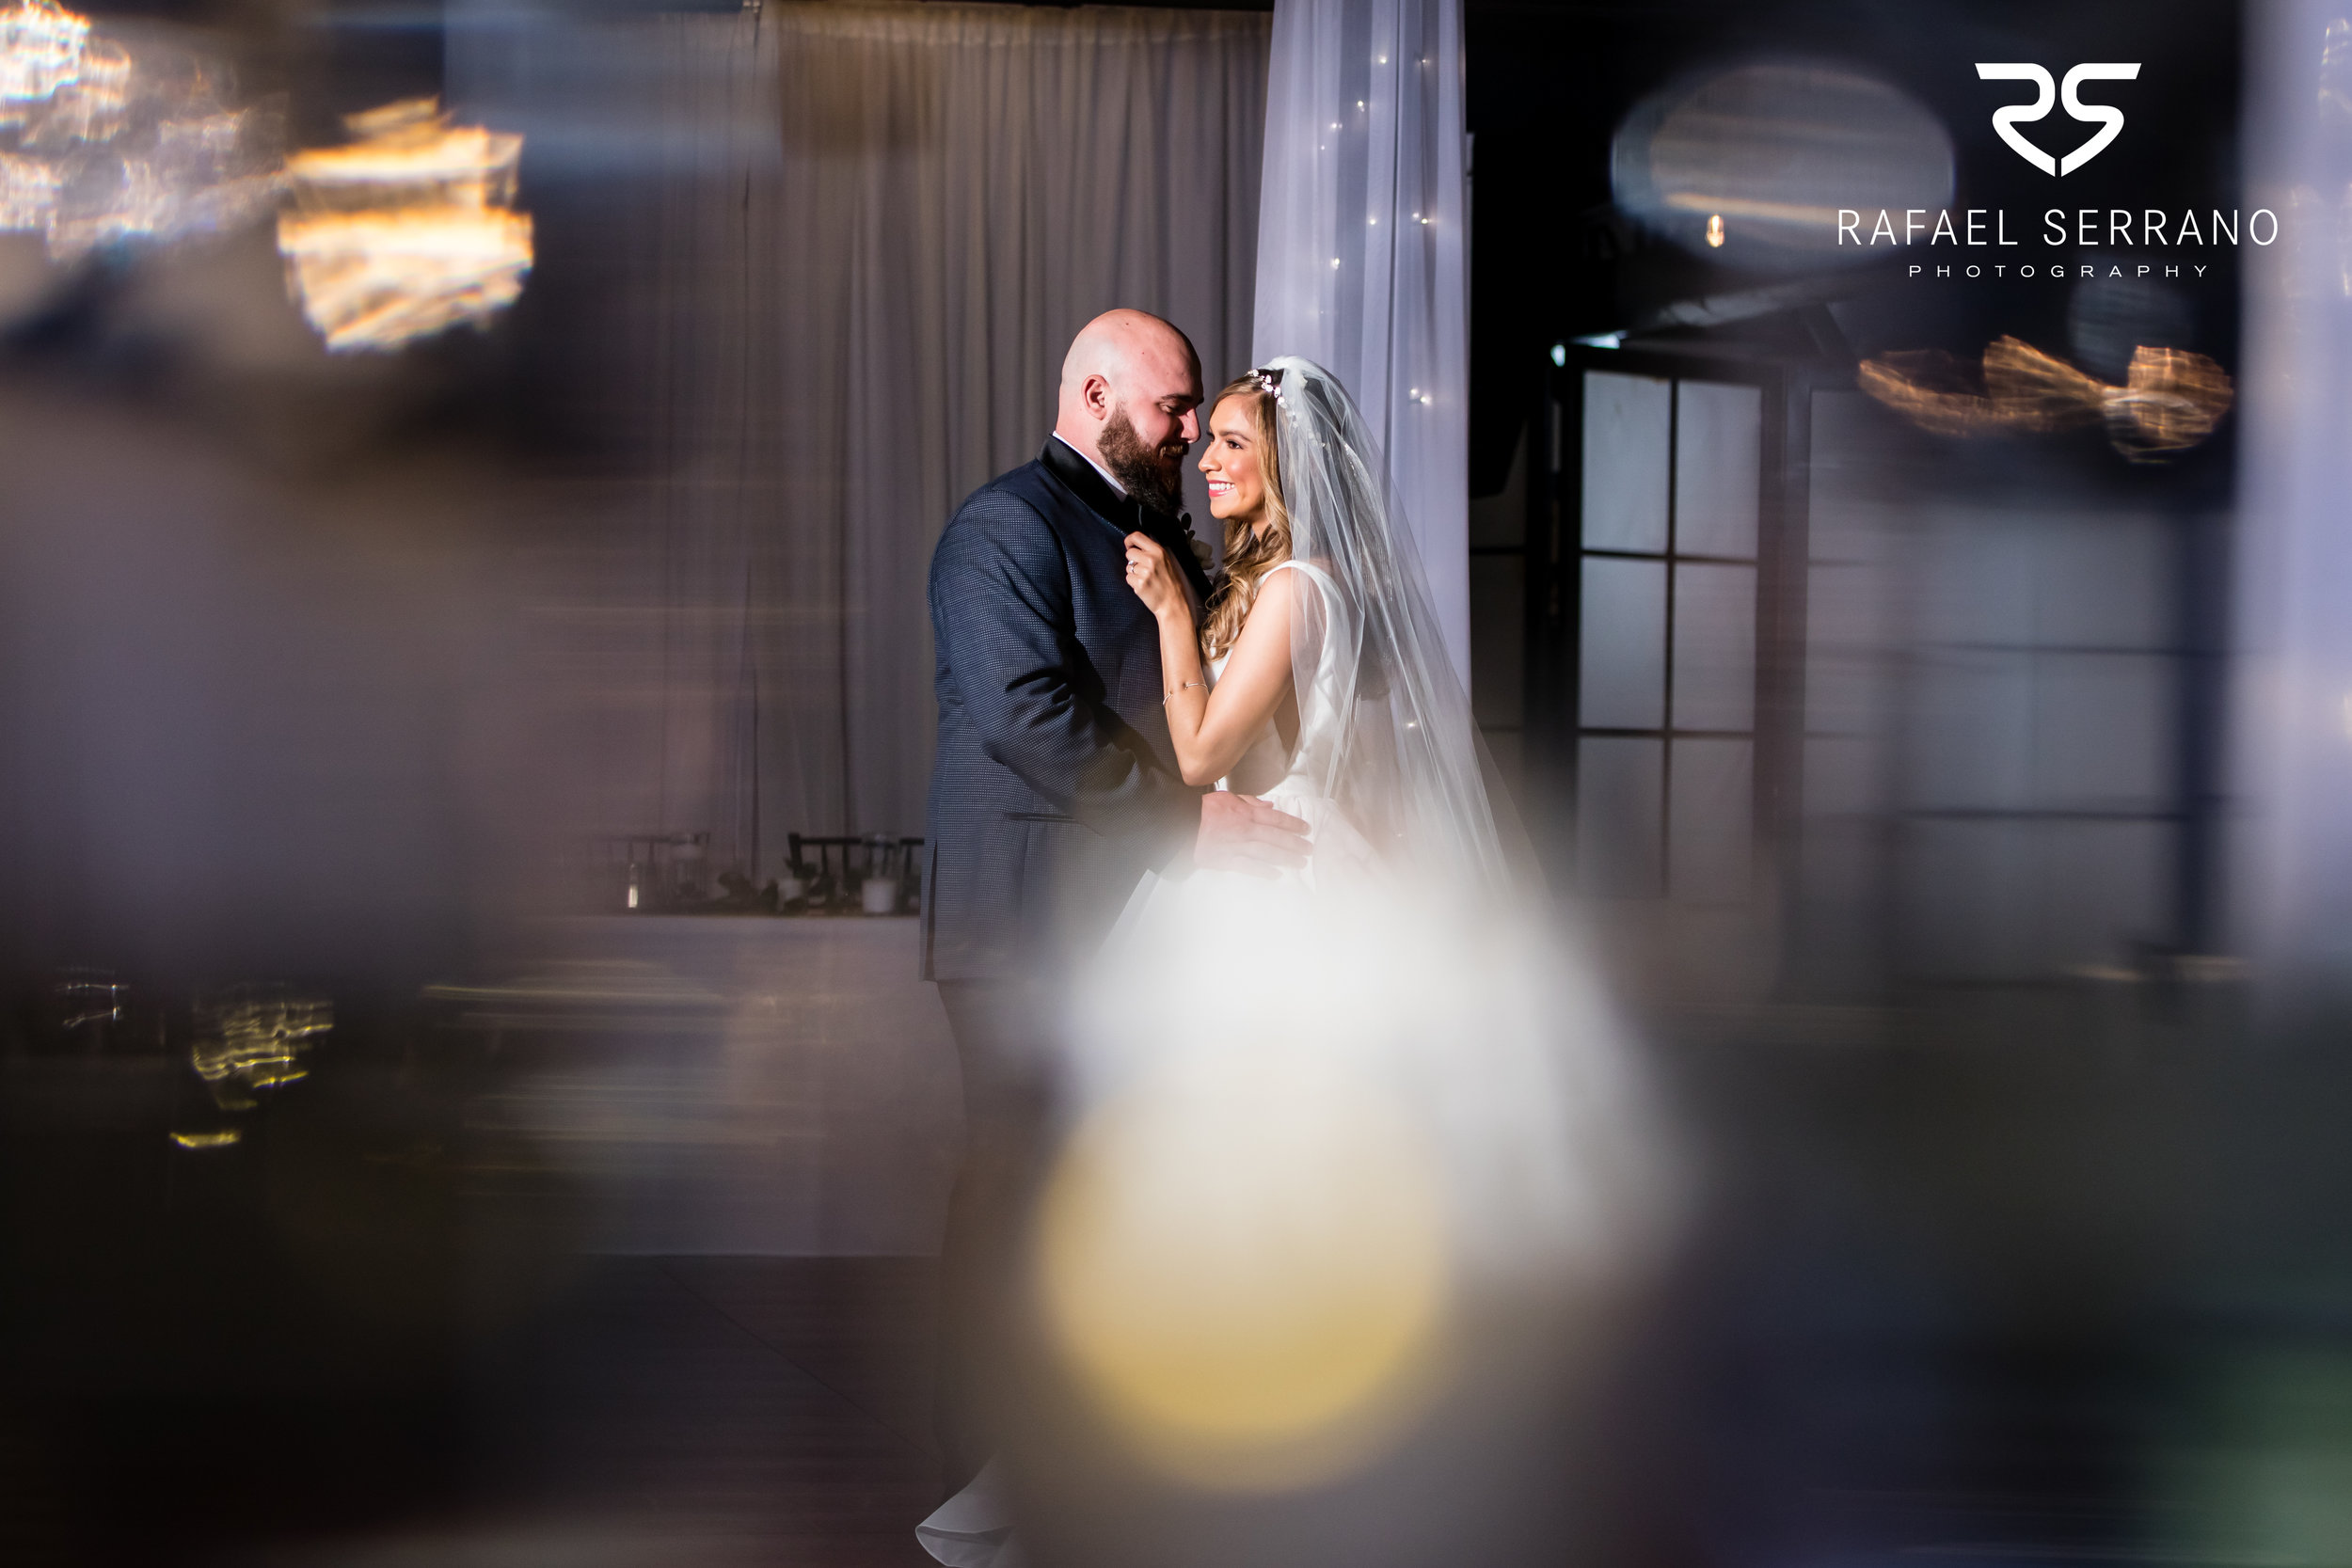 DalllasWeddingPhotography007.jpg